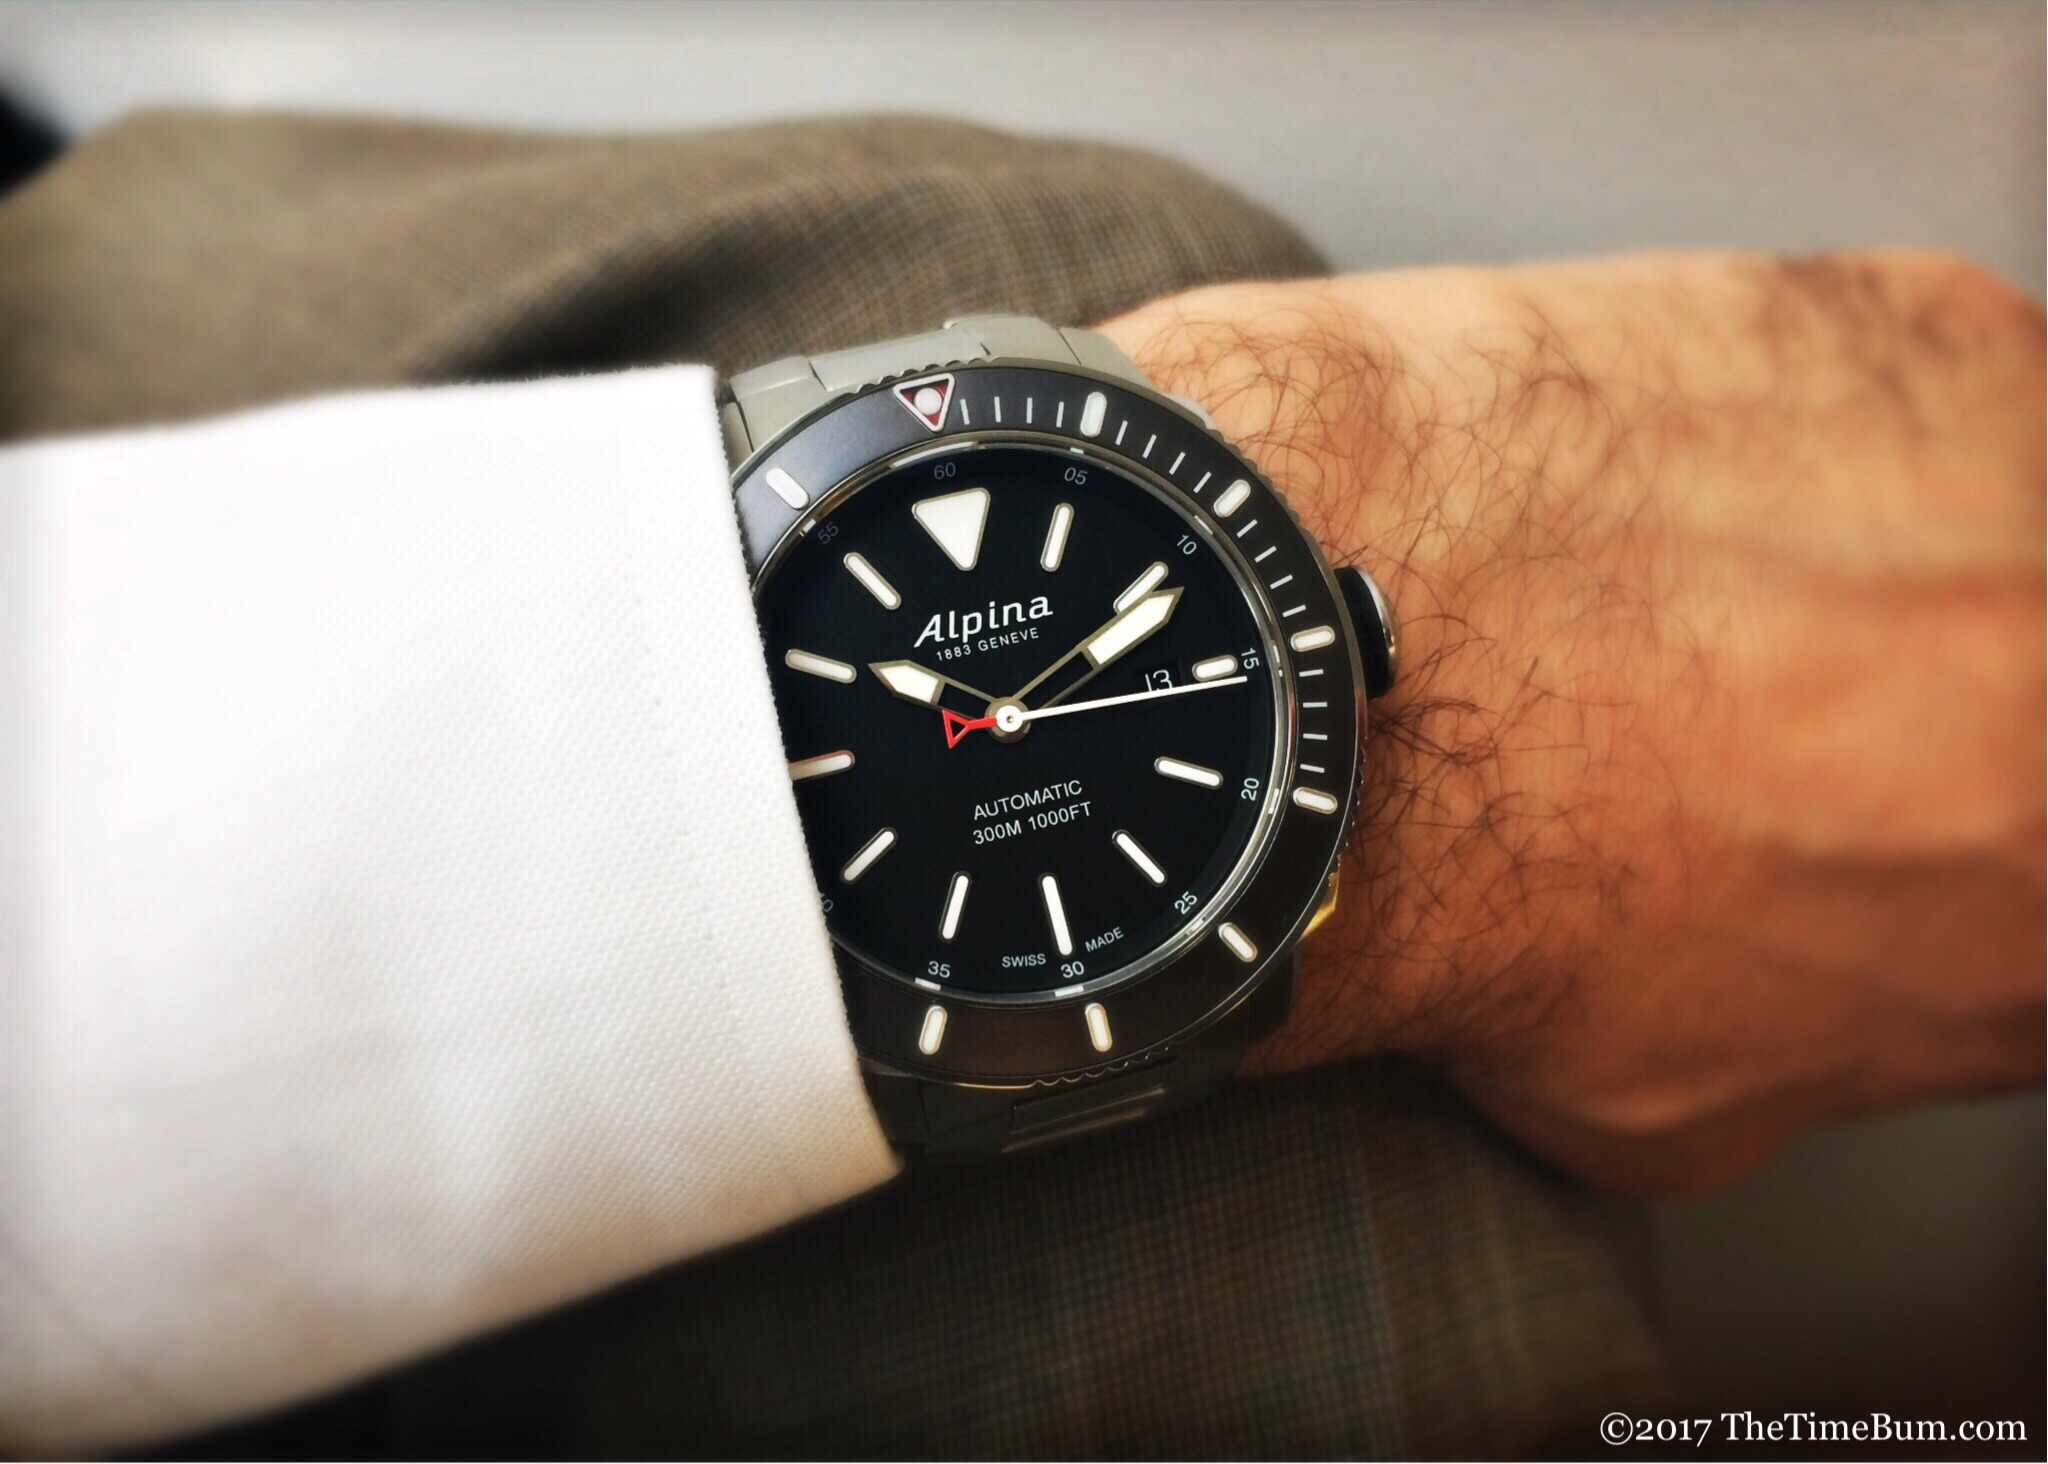 Alpina Seastrong Diver 300 Automatic wrist shot